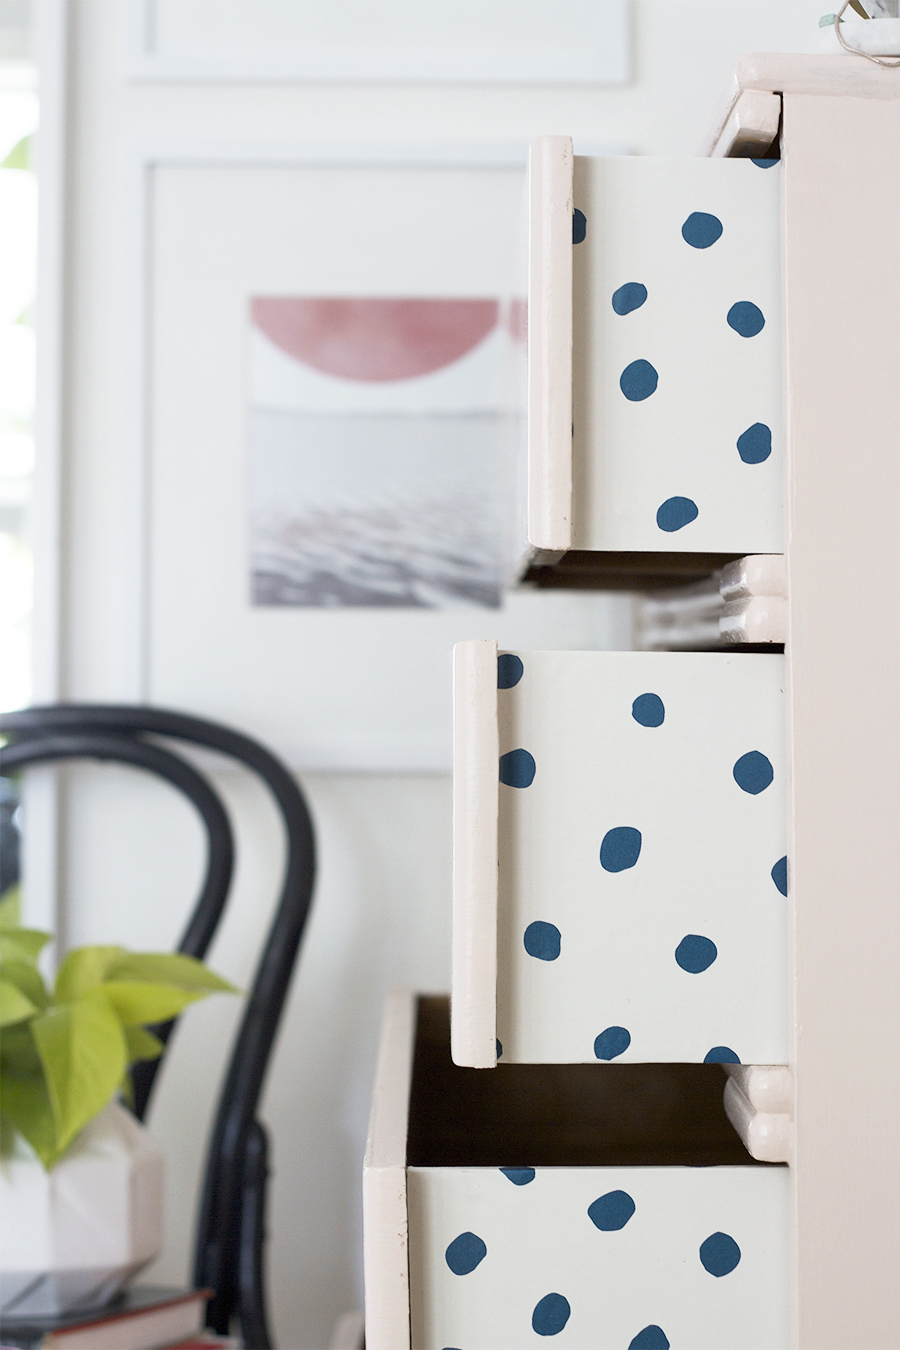 Peekaboo Pattern in a chest of drawers featuring JuJu Wallpaper